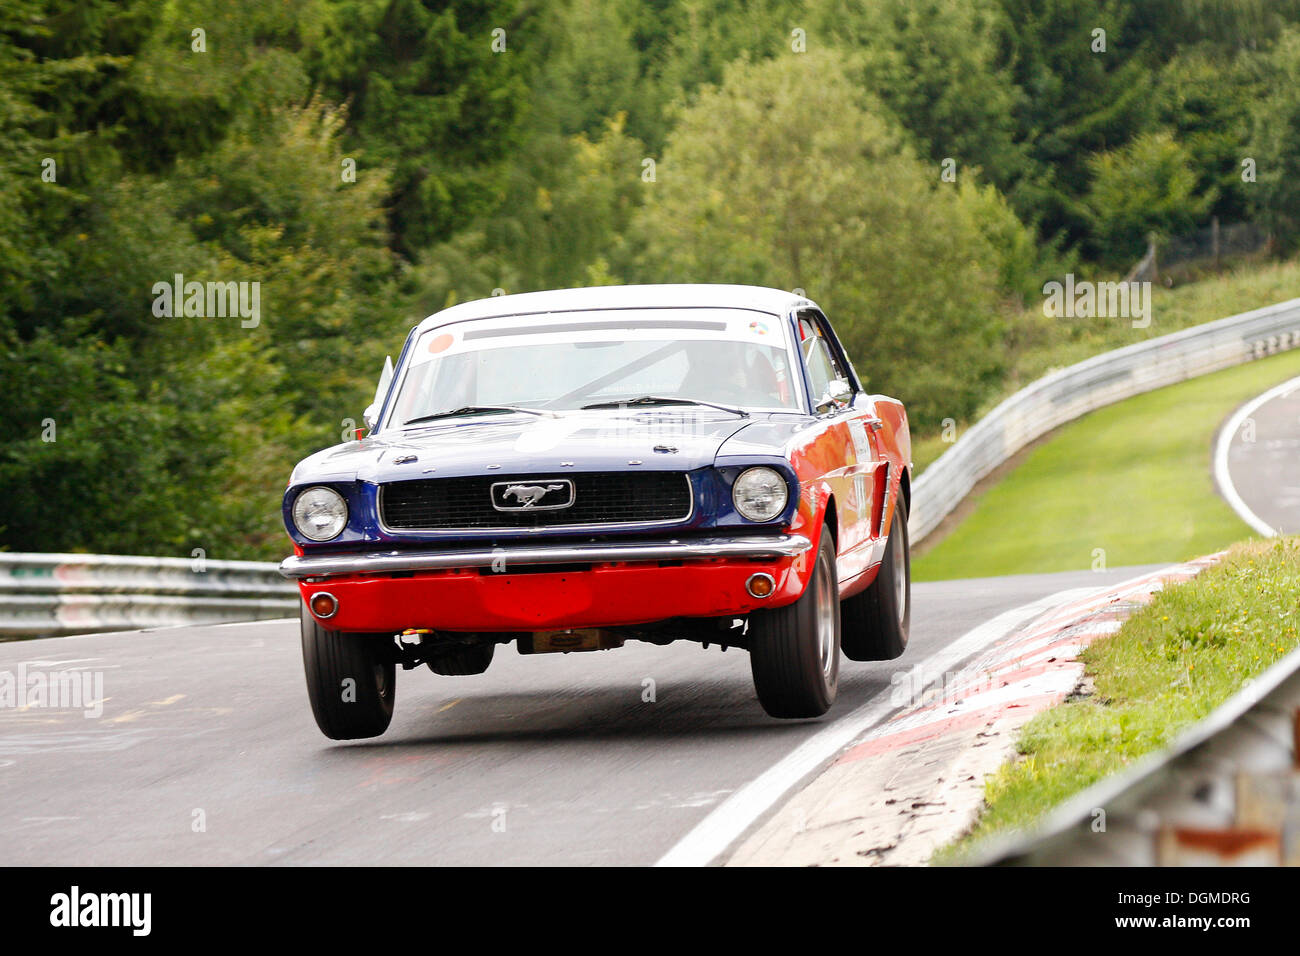 ford mustang jumping at a jump hill ac cobra oldtimer grand prix stock photo royalty free. Black Bedroom Furniture Sets. Home Design Ideas